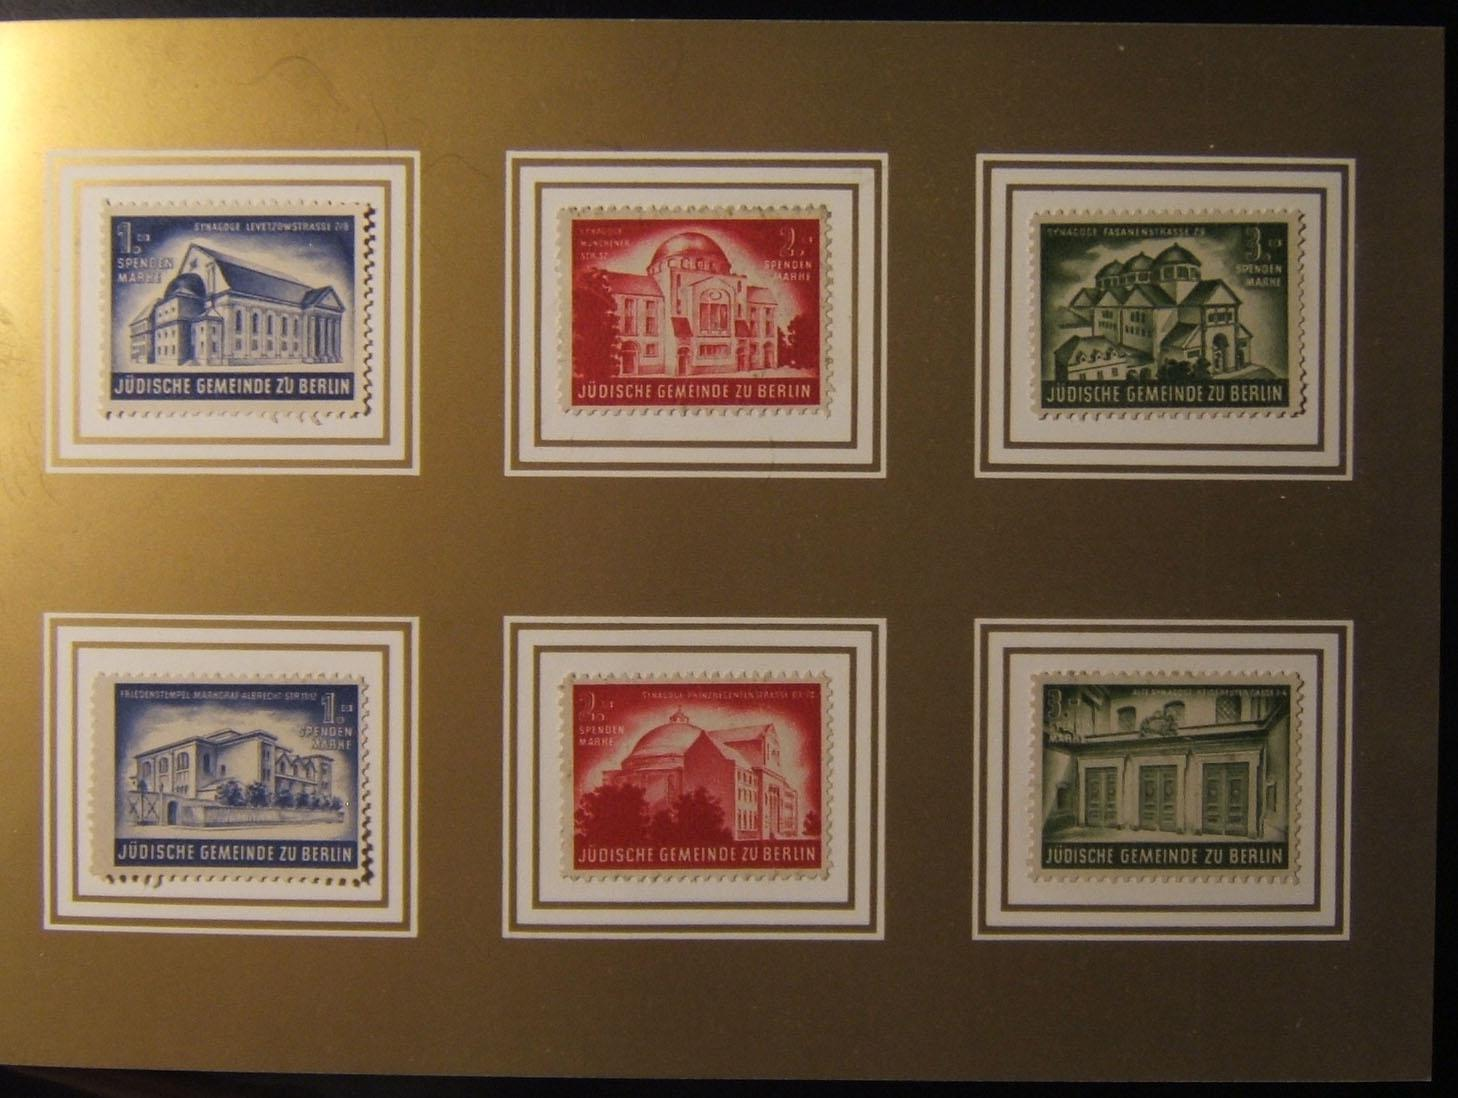 Germany: Jewish Community of Berlin 1968 restoration fund stamp booklet